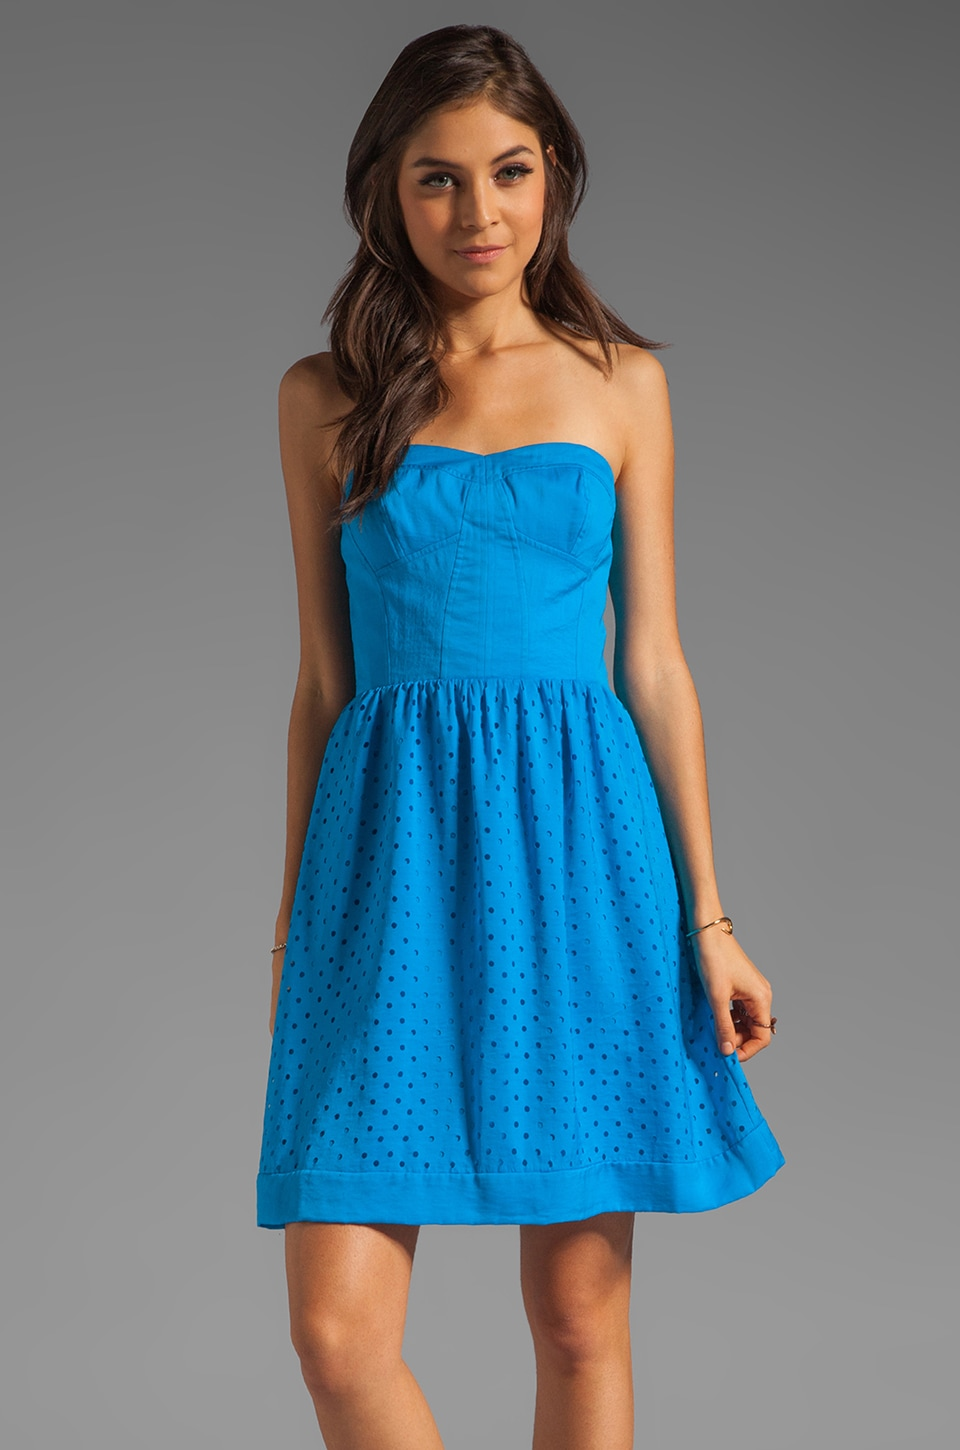 Rebecca Taylor Lasercut Strapless Dress in Turquoise